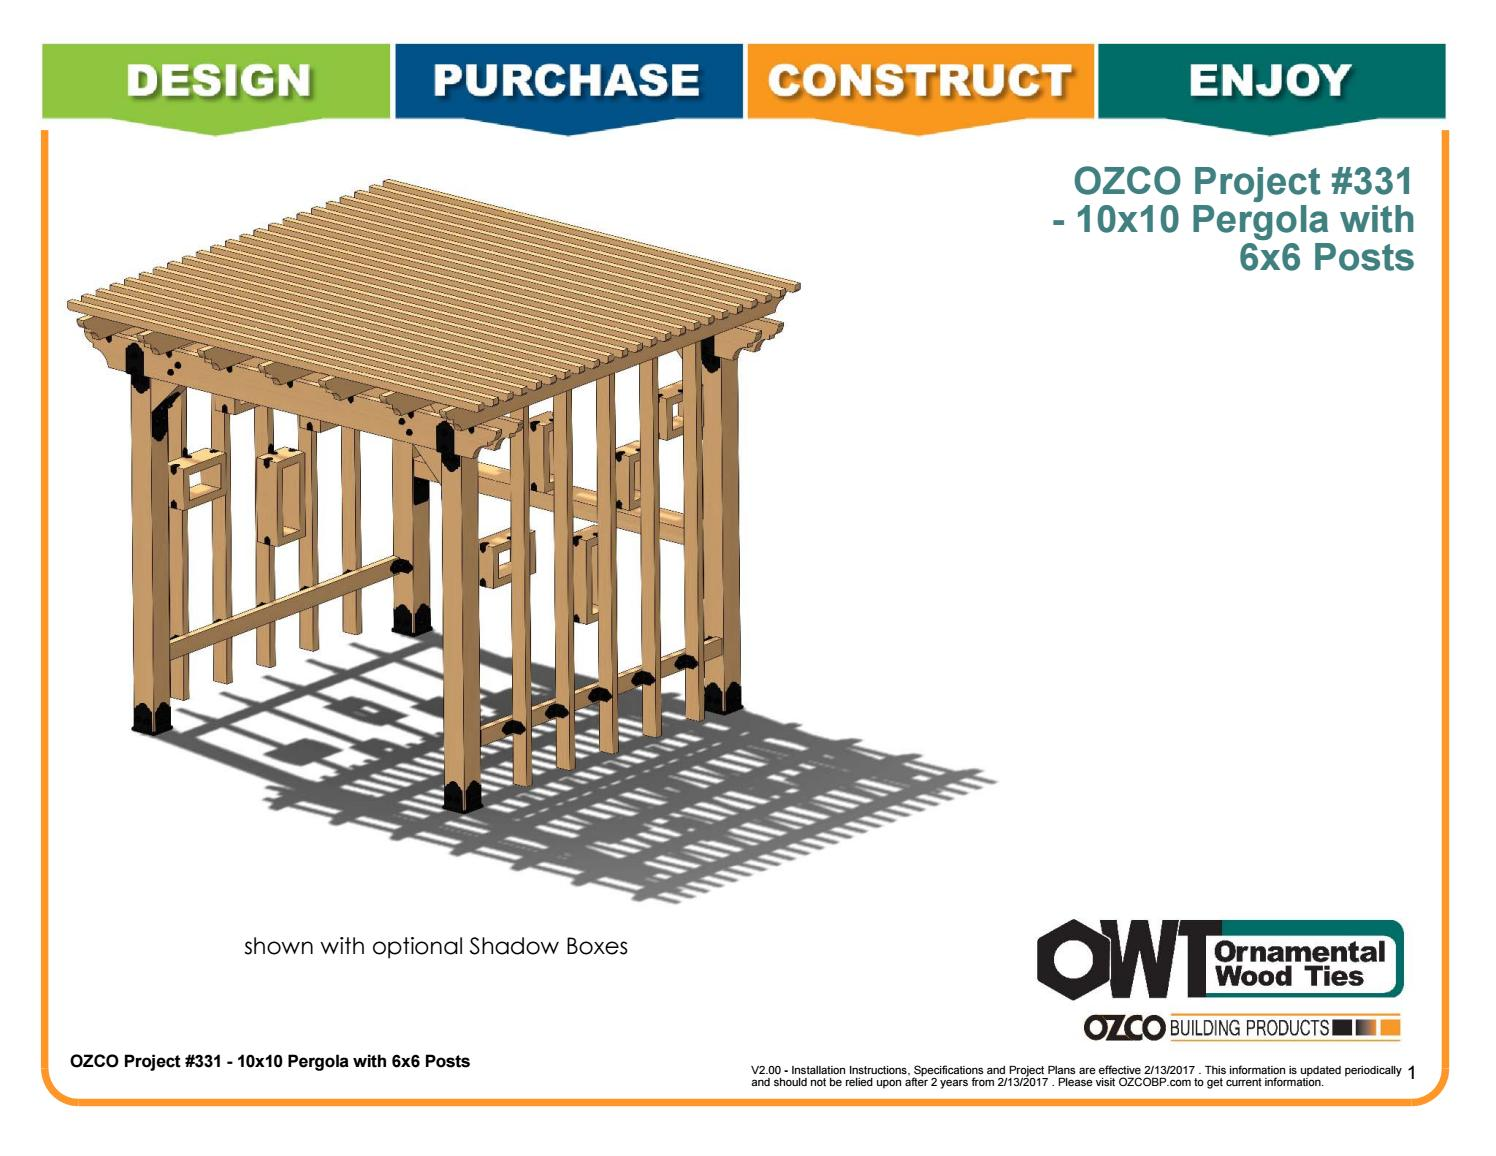 Ozco Project 10x10 Pergola 6x6 Posts 331 By Ozco Building Products Issuu